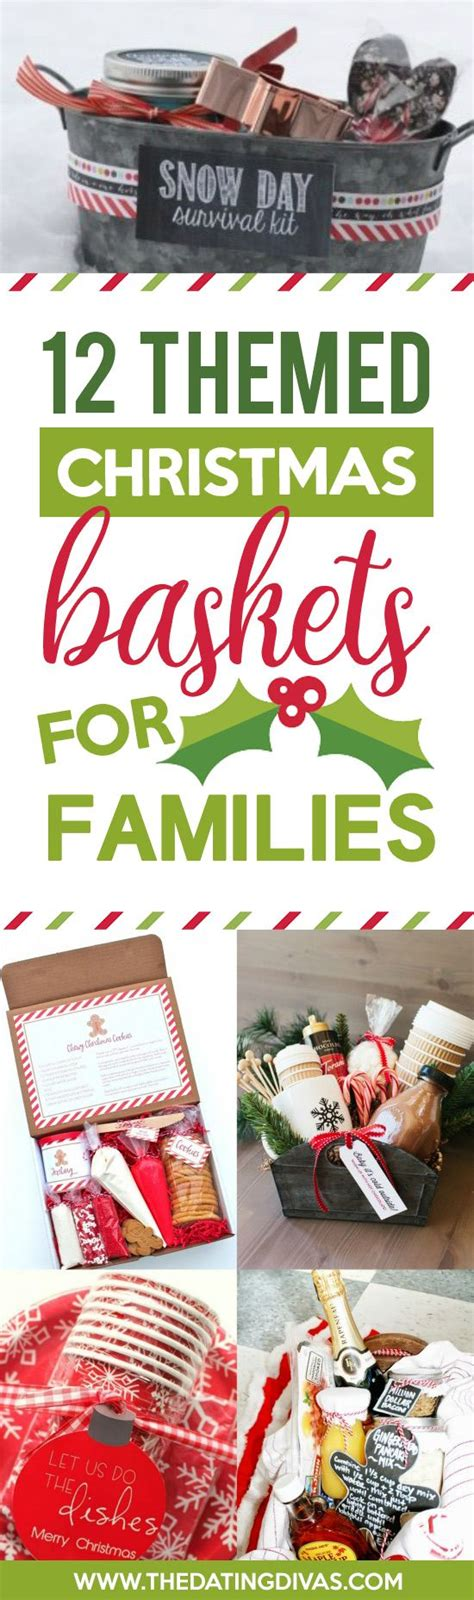 themed gifts for family 50 themed christmas basket ideas christmas gifts gift